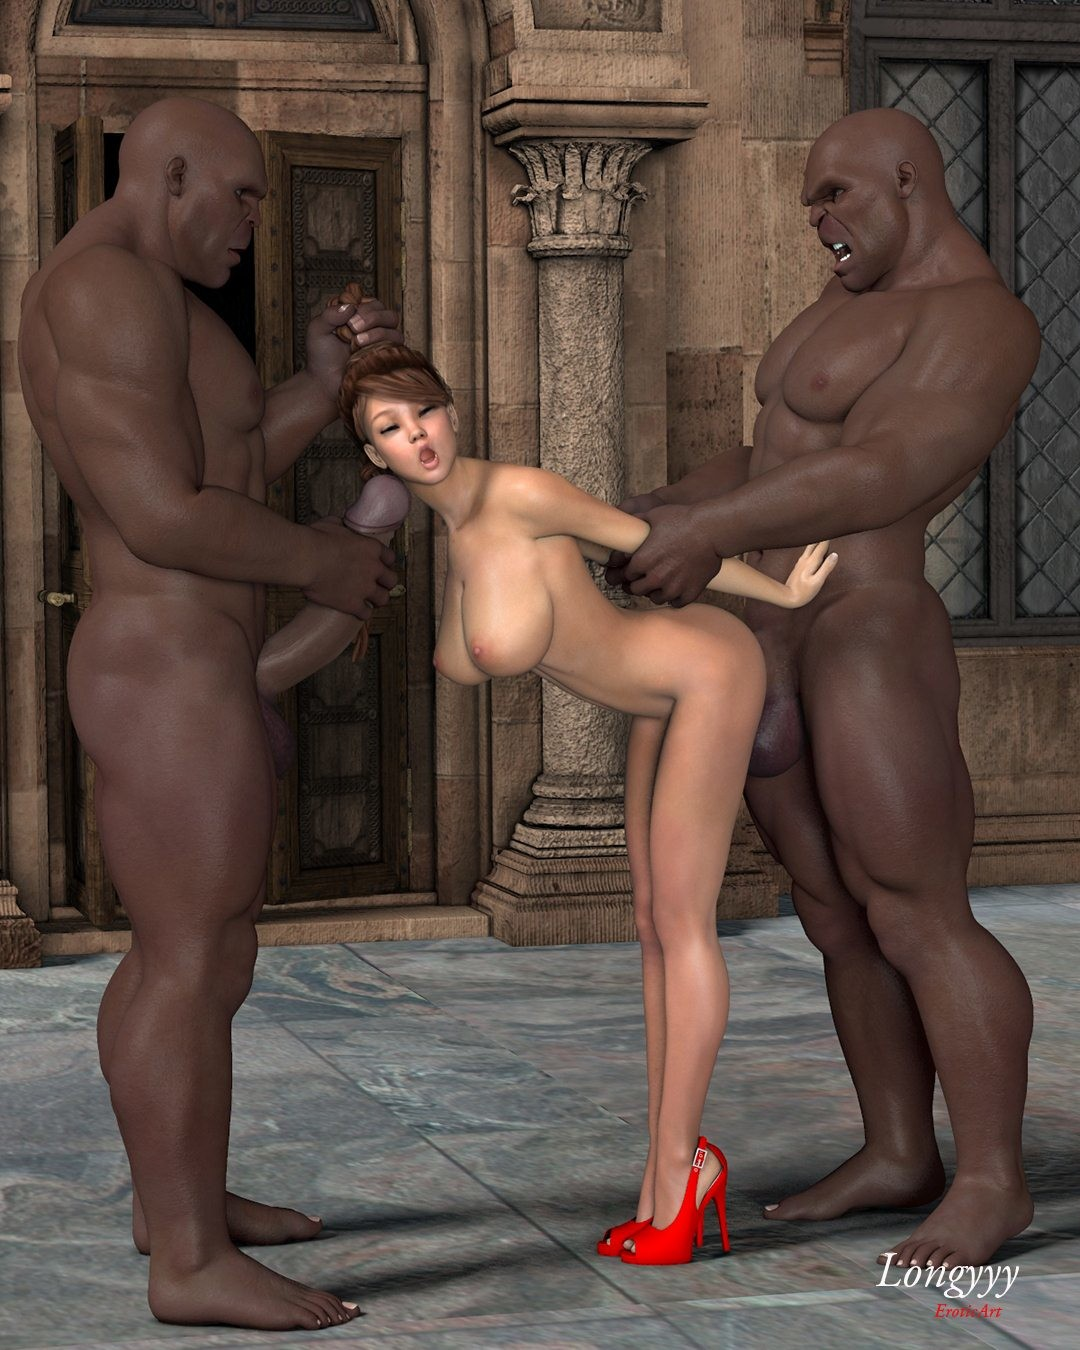 Porn games online for mobile